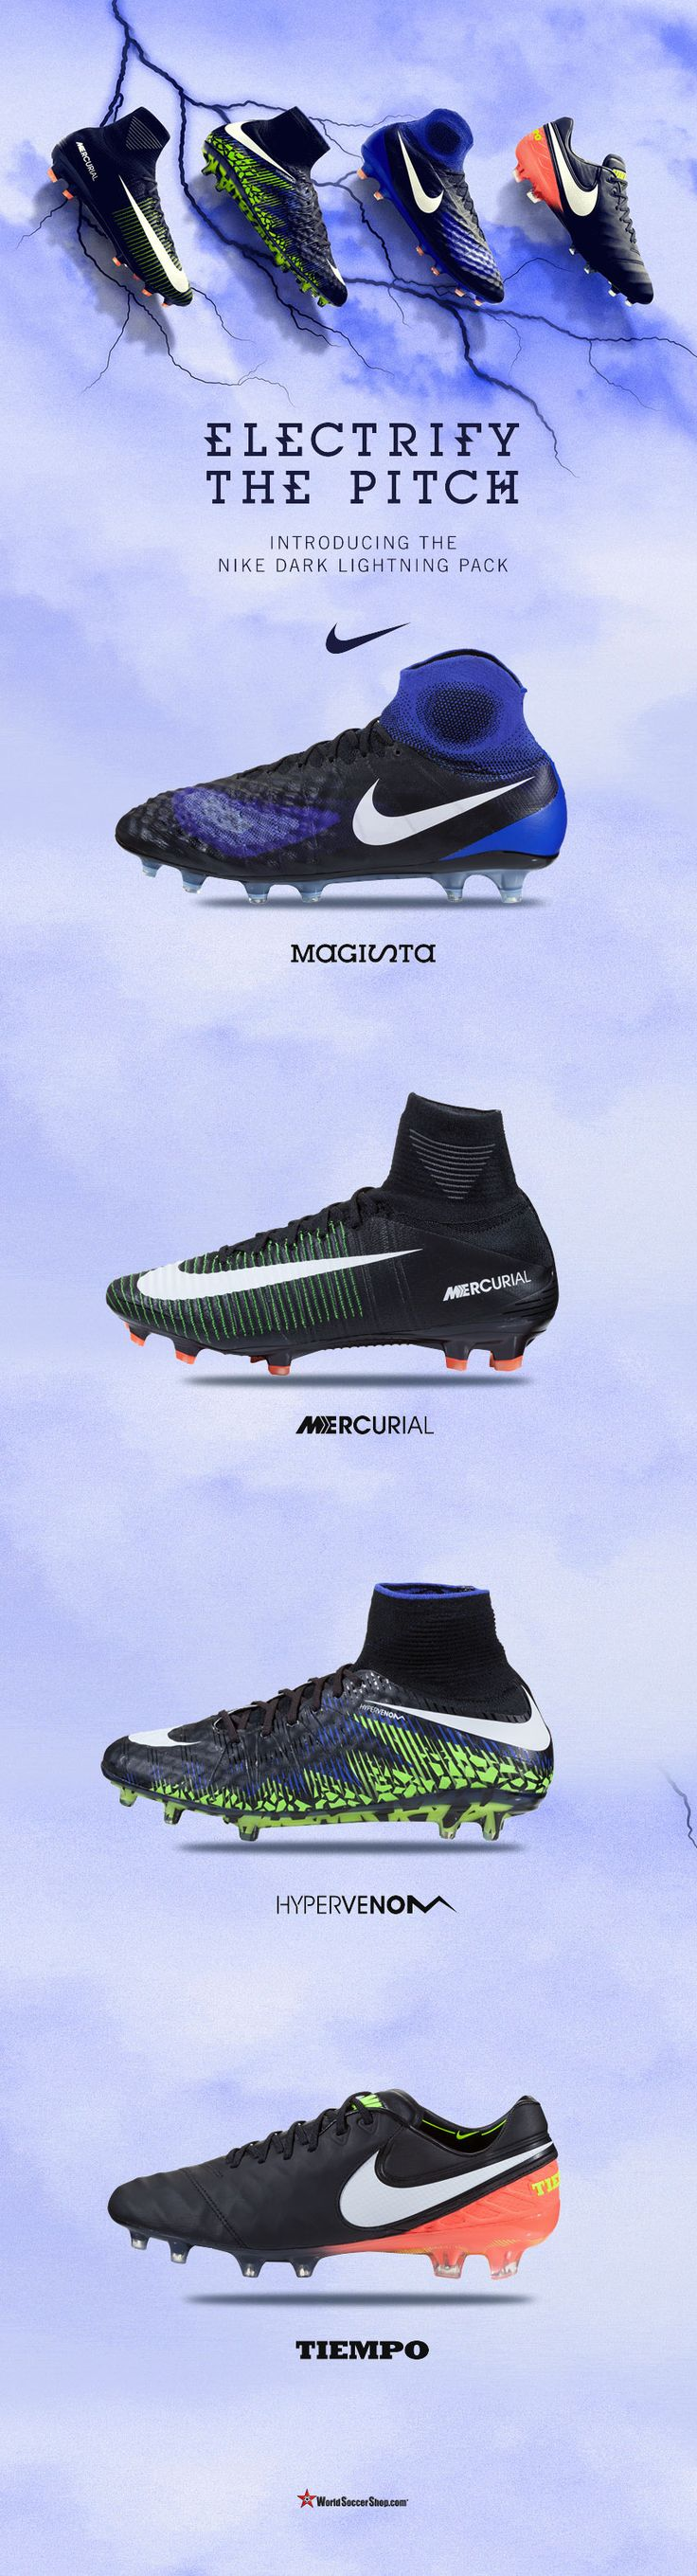 NIKE FOOTBALL DARK LIGHTNING PACK Nike introduces the Dark Lightning Pack, a collection of football boots featuring a black upper, a white Swoosh and a pop of bright colors on each of all four Nike Football silos — Mercurial, Hypervenom, Magista and Tiempo.